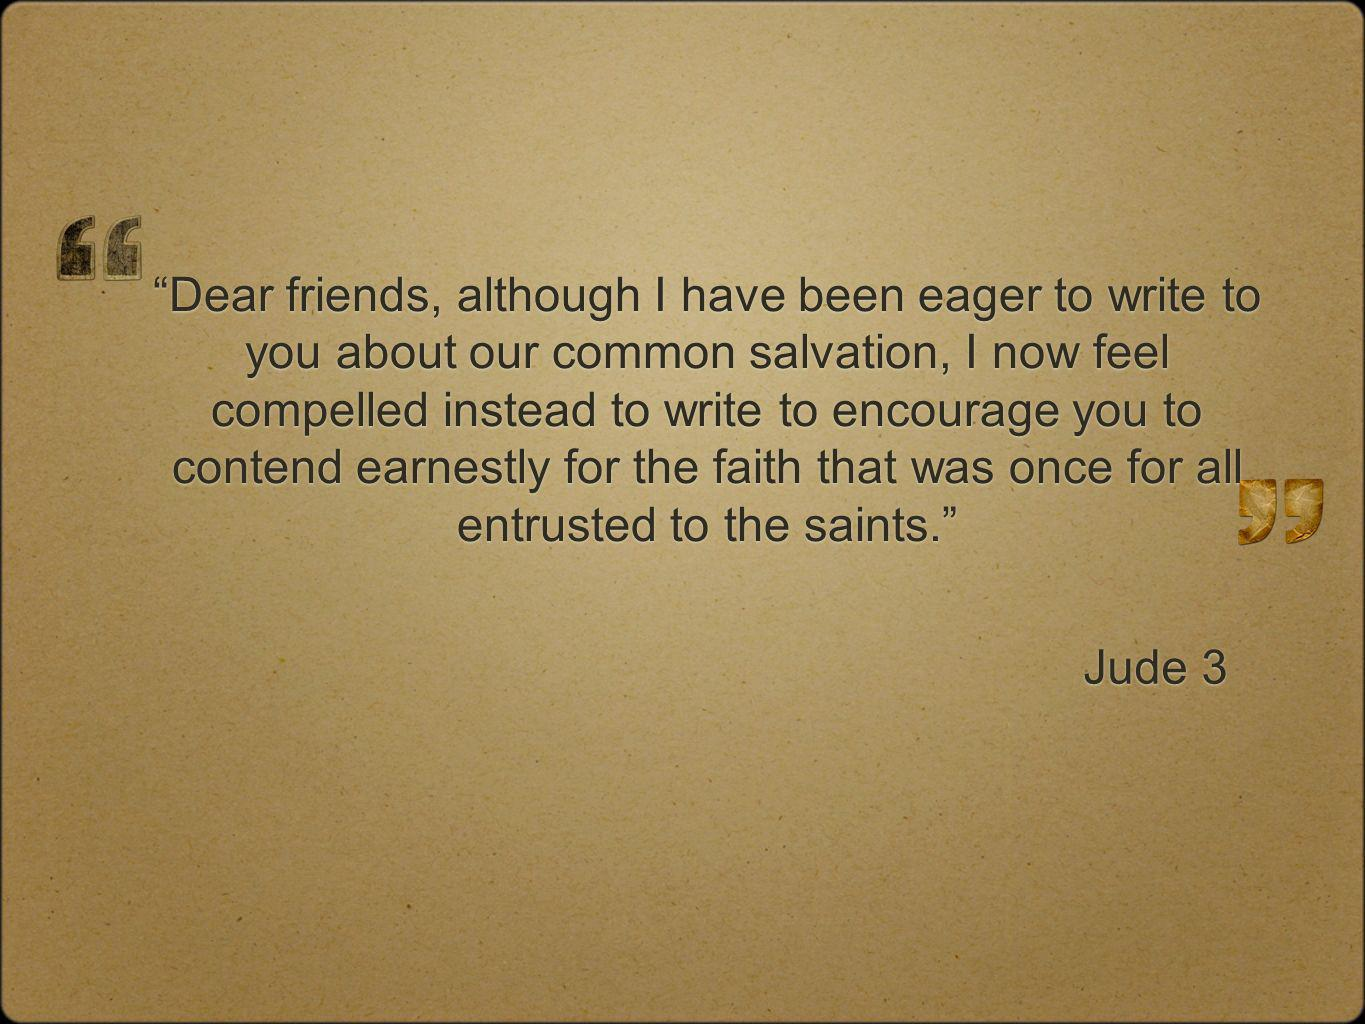 Dear friends, although I have been eager to write to you about our common salvation, I now feel compelled instead to write to encourage you to contend earnestly for the faith that was once for all entrusted to the saints.